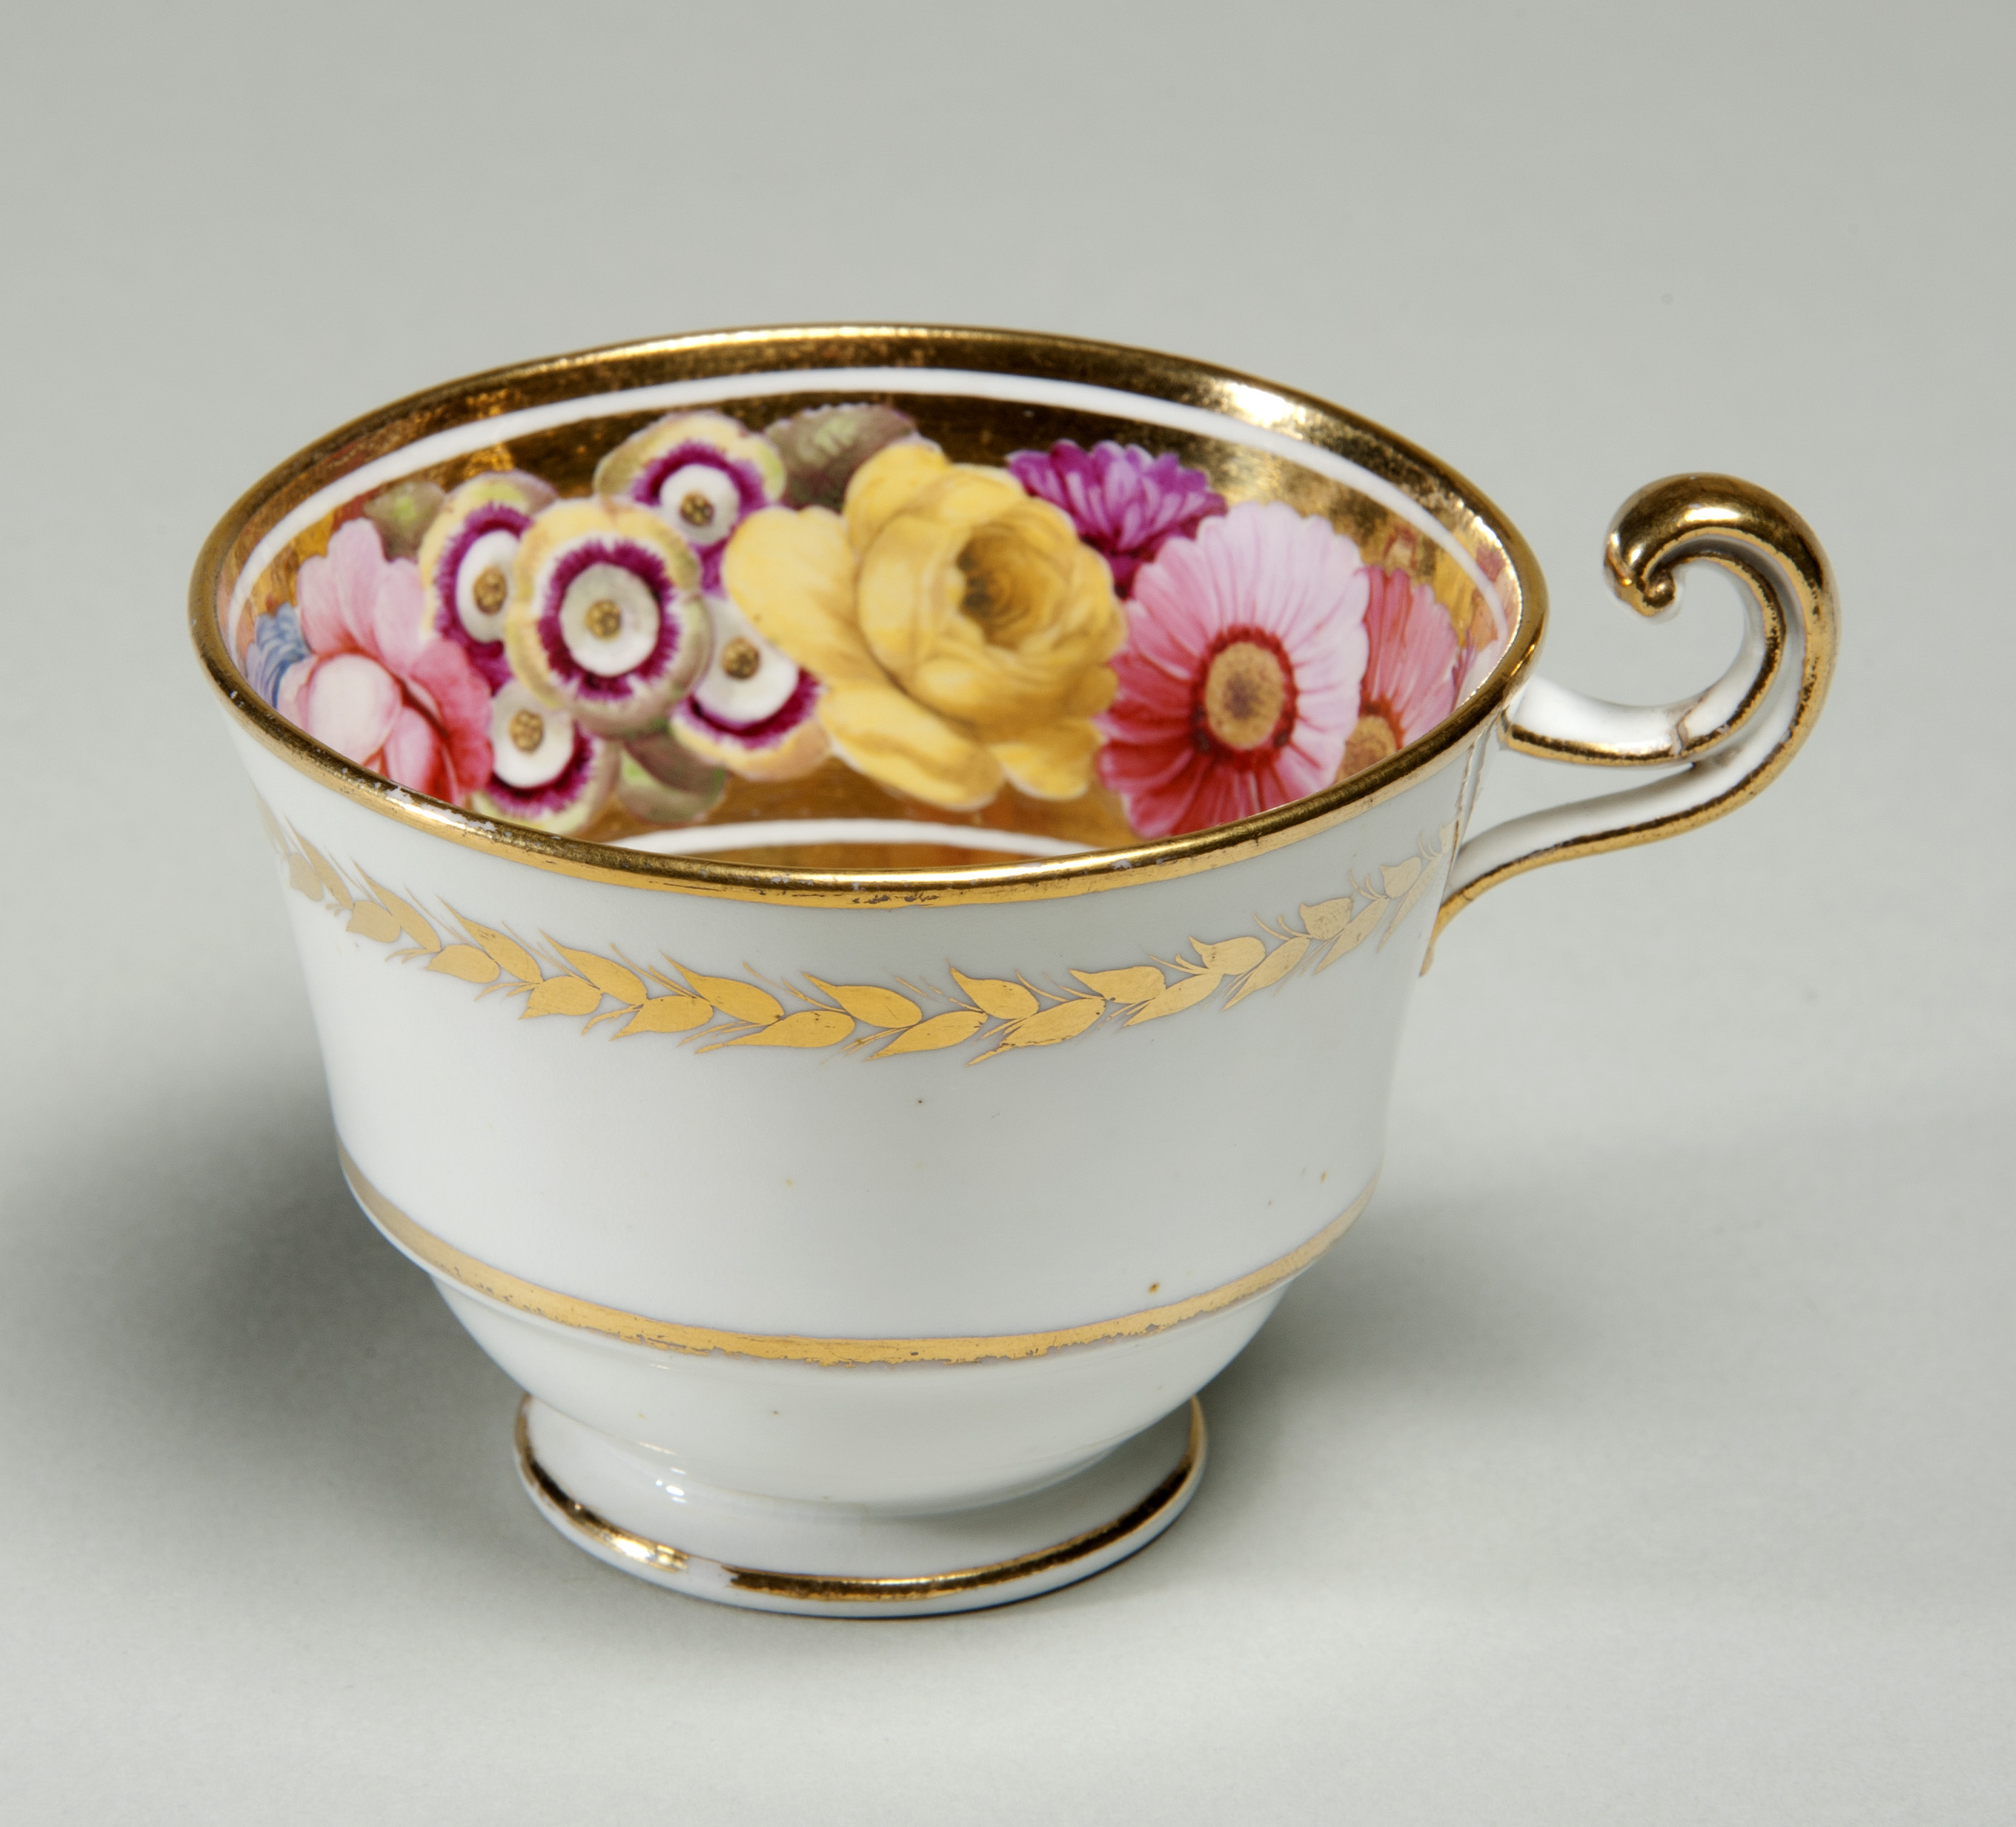 Colour photograph of a delicate looking teacup with pink and yellow flowers painted inside.  It has gold edges